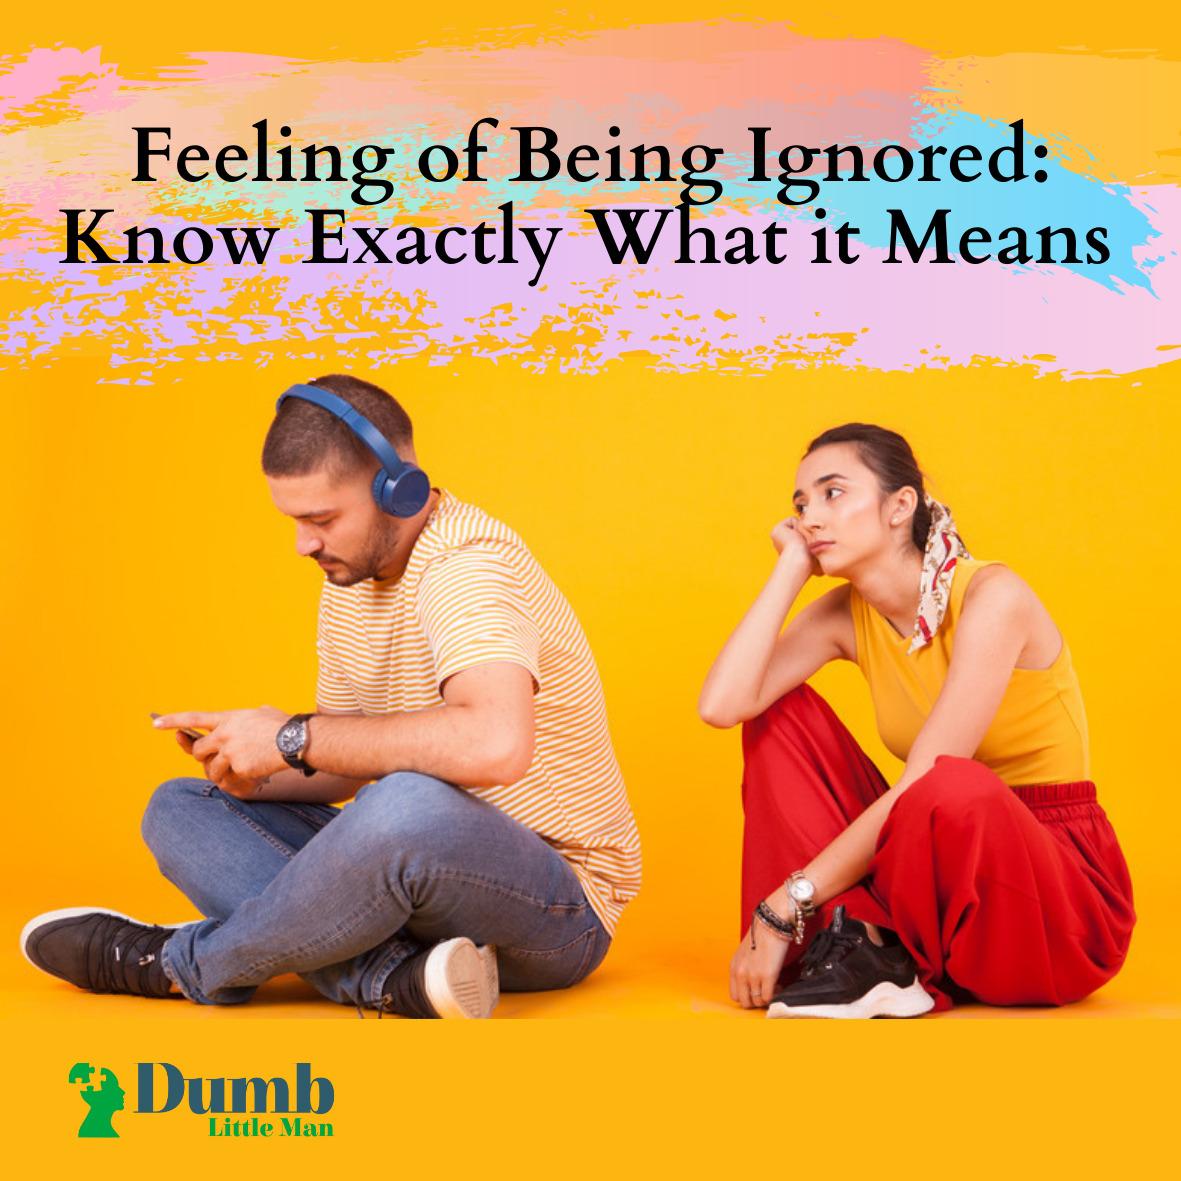 feeling-of-being-ignored:-know-exactly-what-it-means